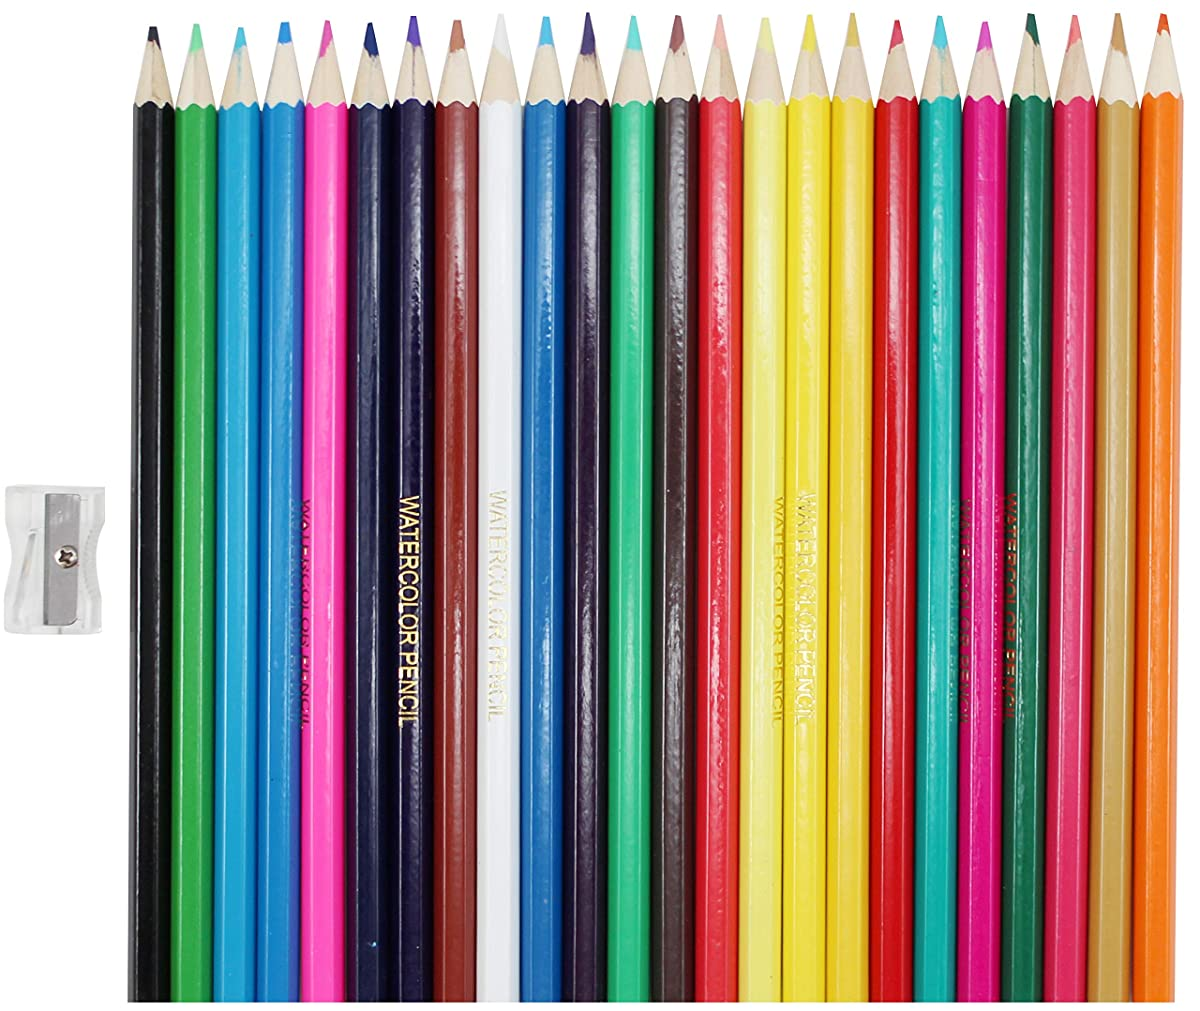 24 Watercolor Pencils with Free Pencil Sharpener Included